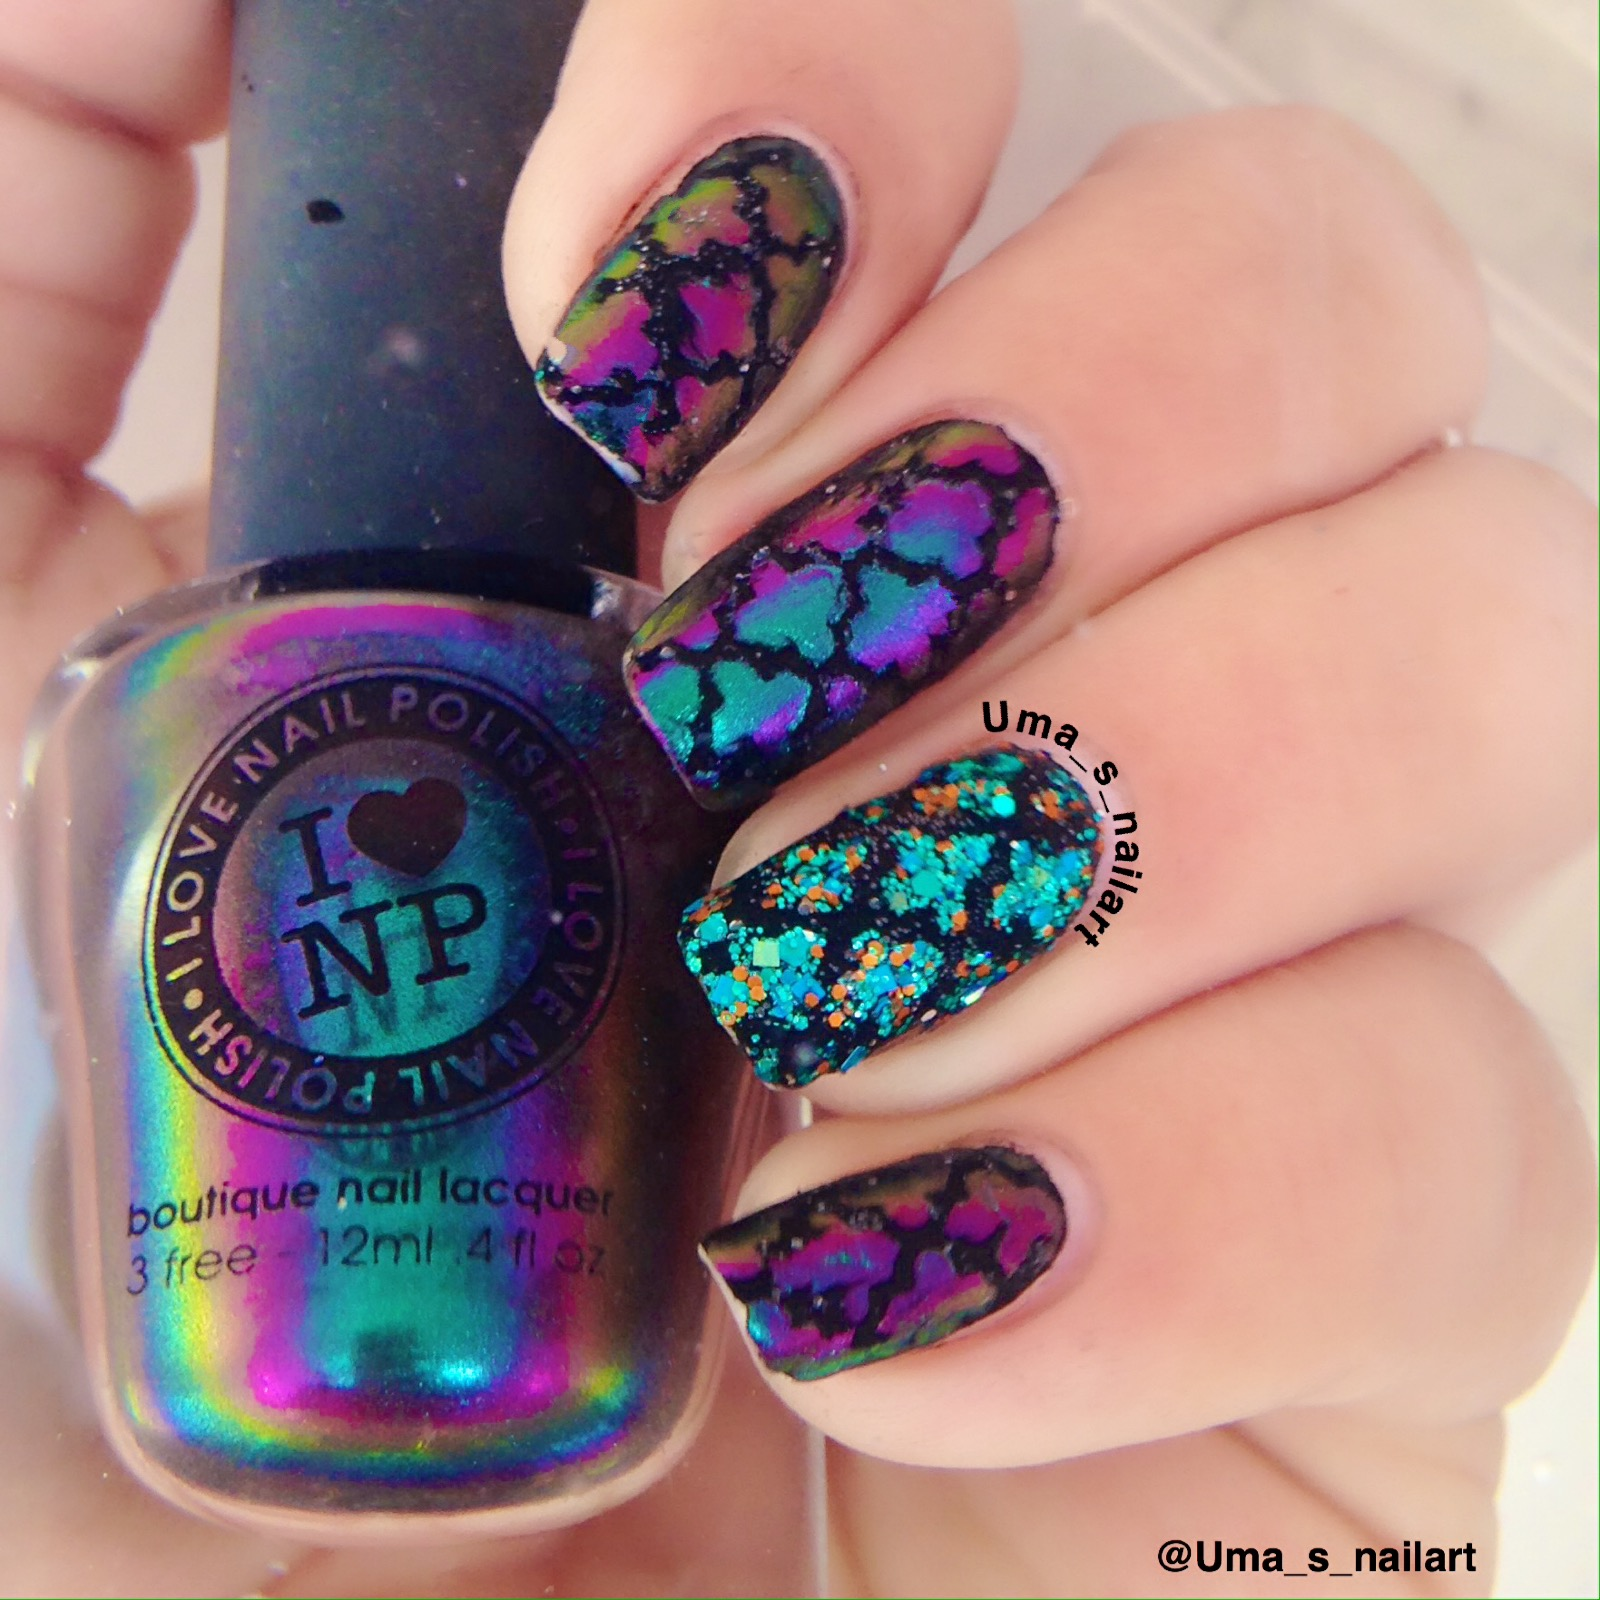 Umas nail art hpb presents moroccan nail vinyl nail art it is an awesome color shifter which shifts from purple to teal and has a very powerful color shift even in natural sunlight for this nail art prinsesfo Gallery